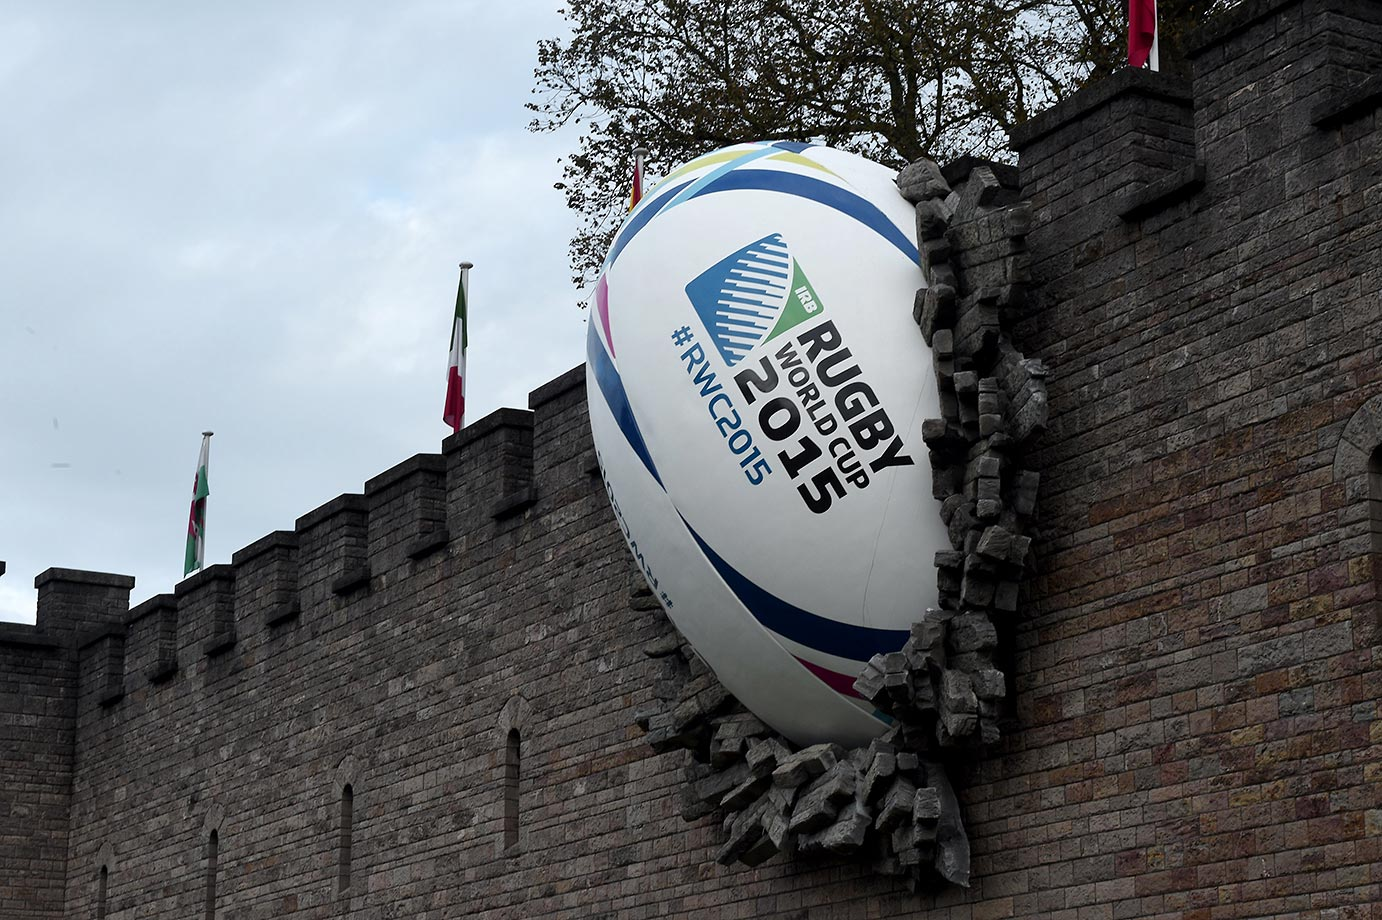 A giant rugby ball breaking through the wall of Cardiff castle before the start of the 2015 Rugby Union World Cup.